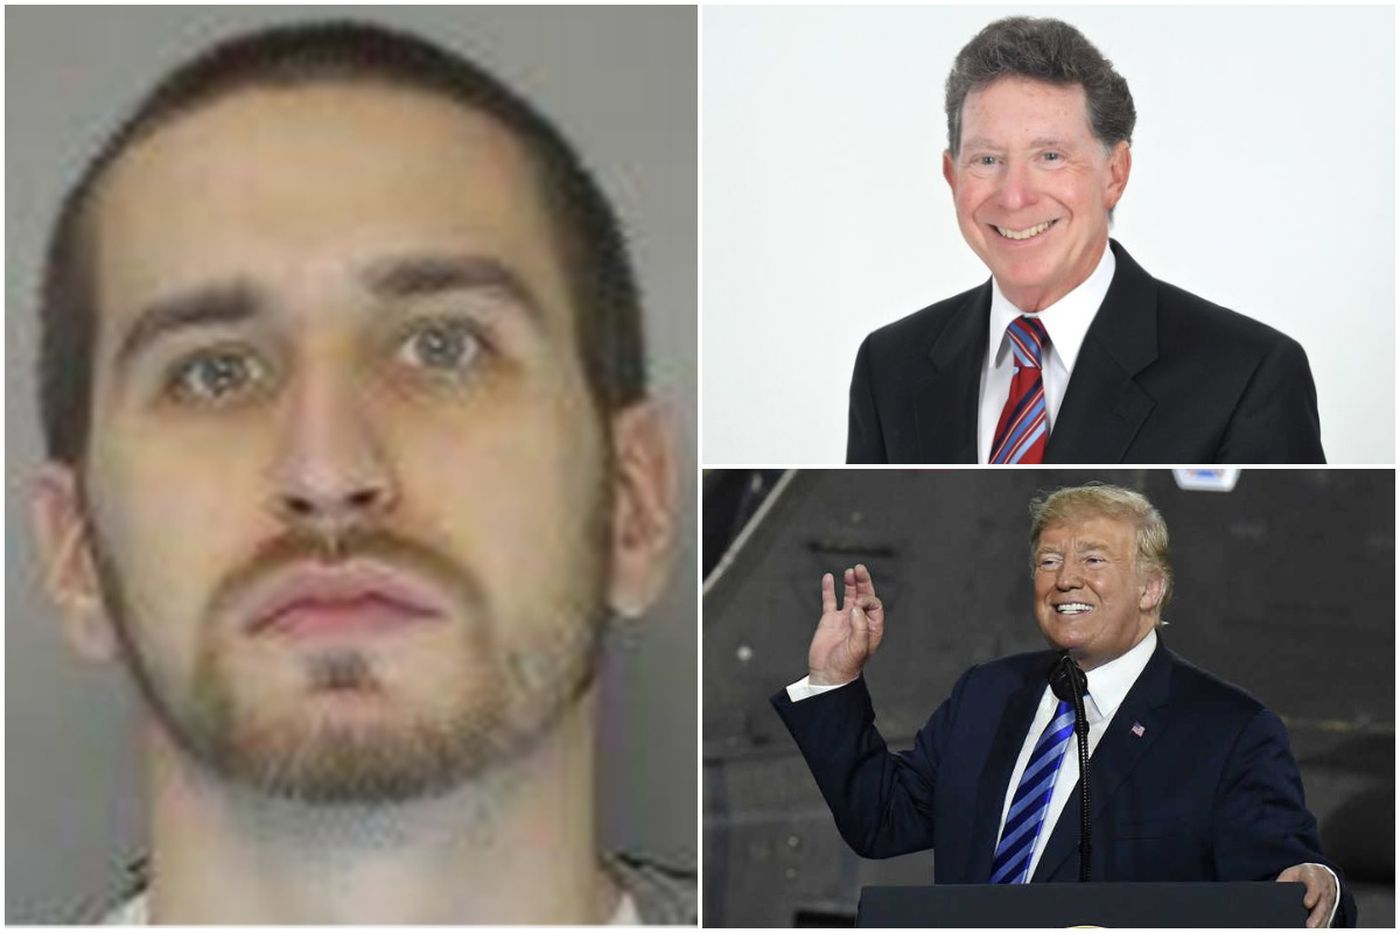 Pa. man accused of threatening president arrested in Ohio